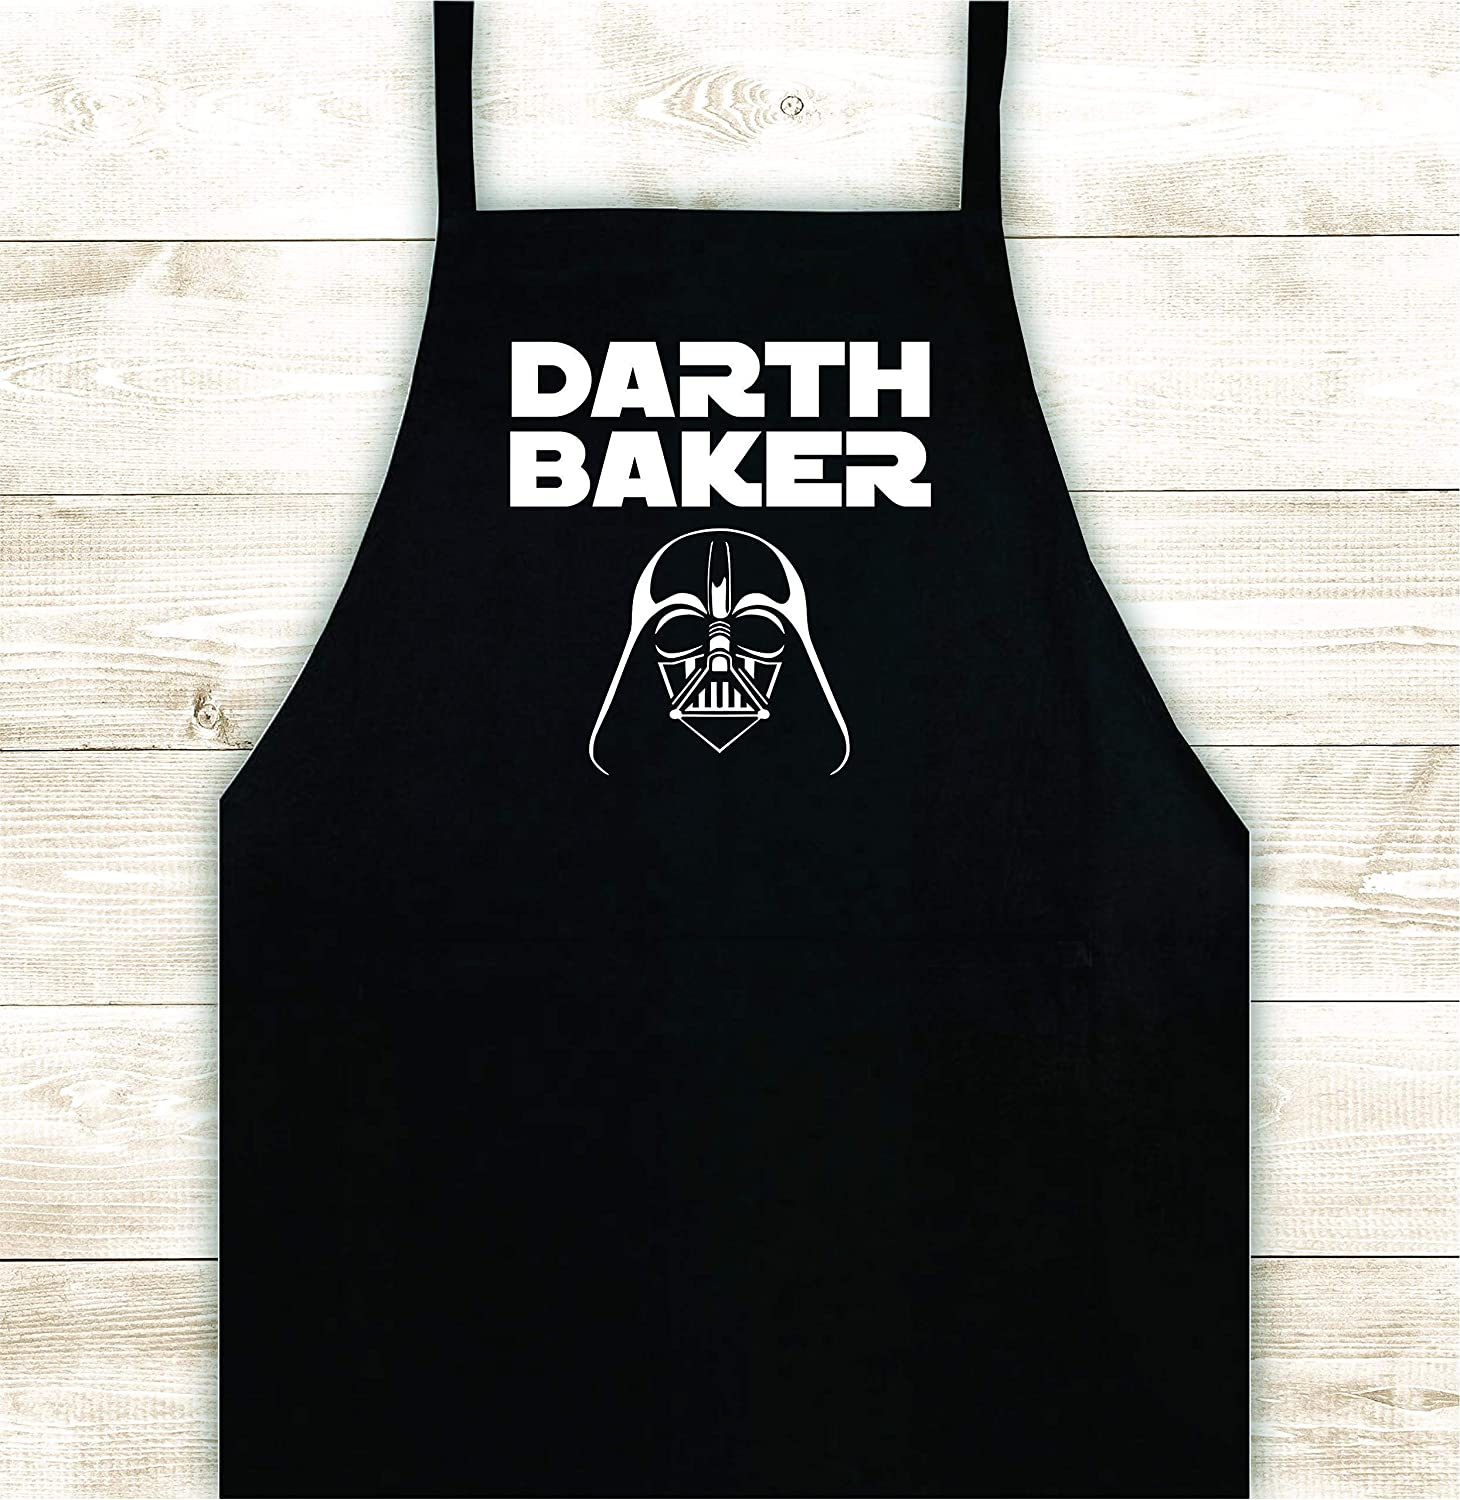 Darth Baker Apron Custom Design Heat Press Vinyl BBQ Cook Grill Barbeque Chef Funny Gift Cow Steak Men Pig Pork Bacon Party Bake Girls Food Father Gift Birthday Cookies Cake Brownies